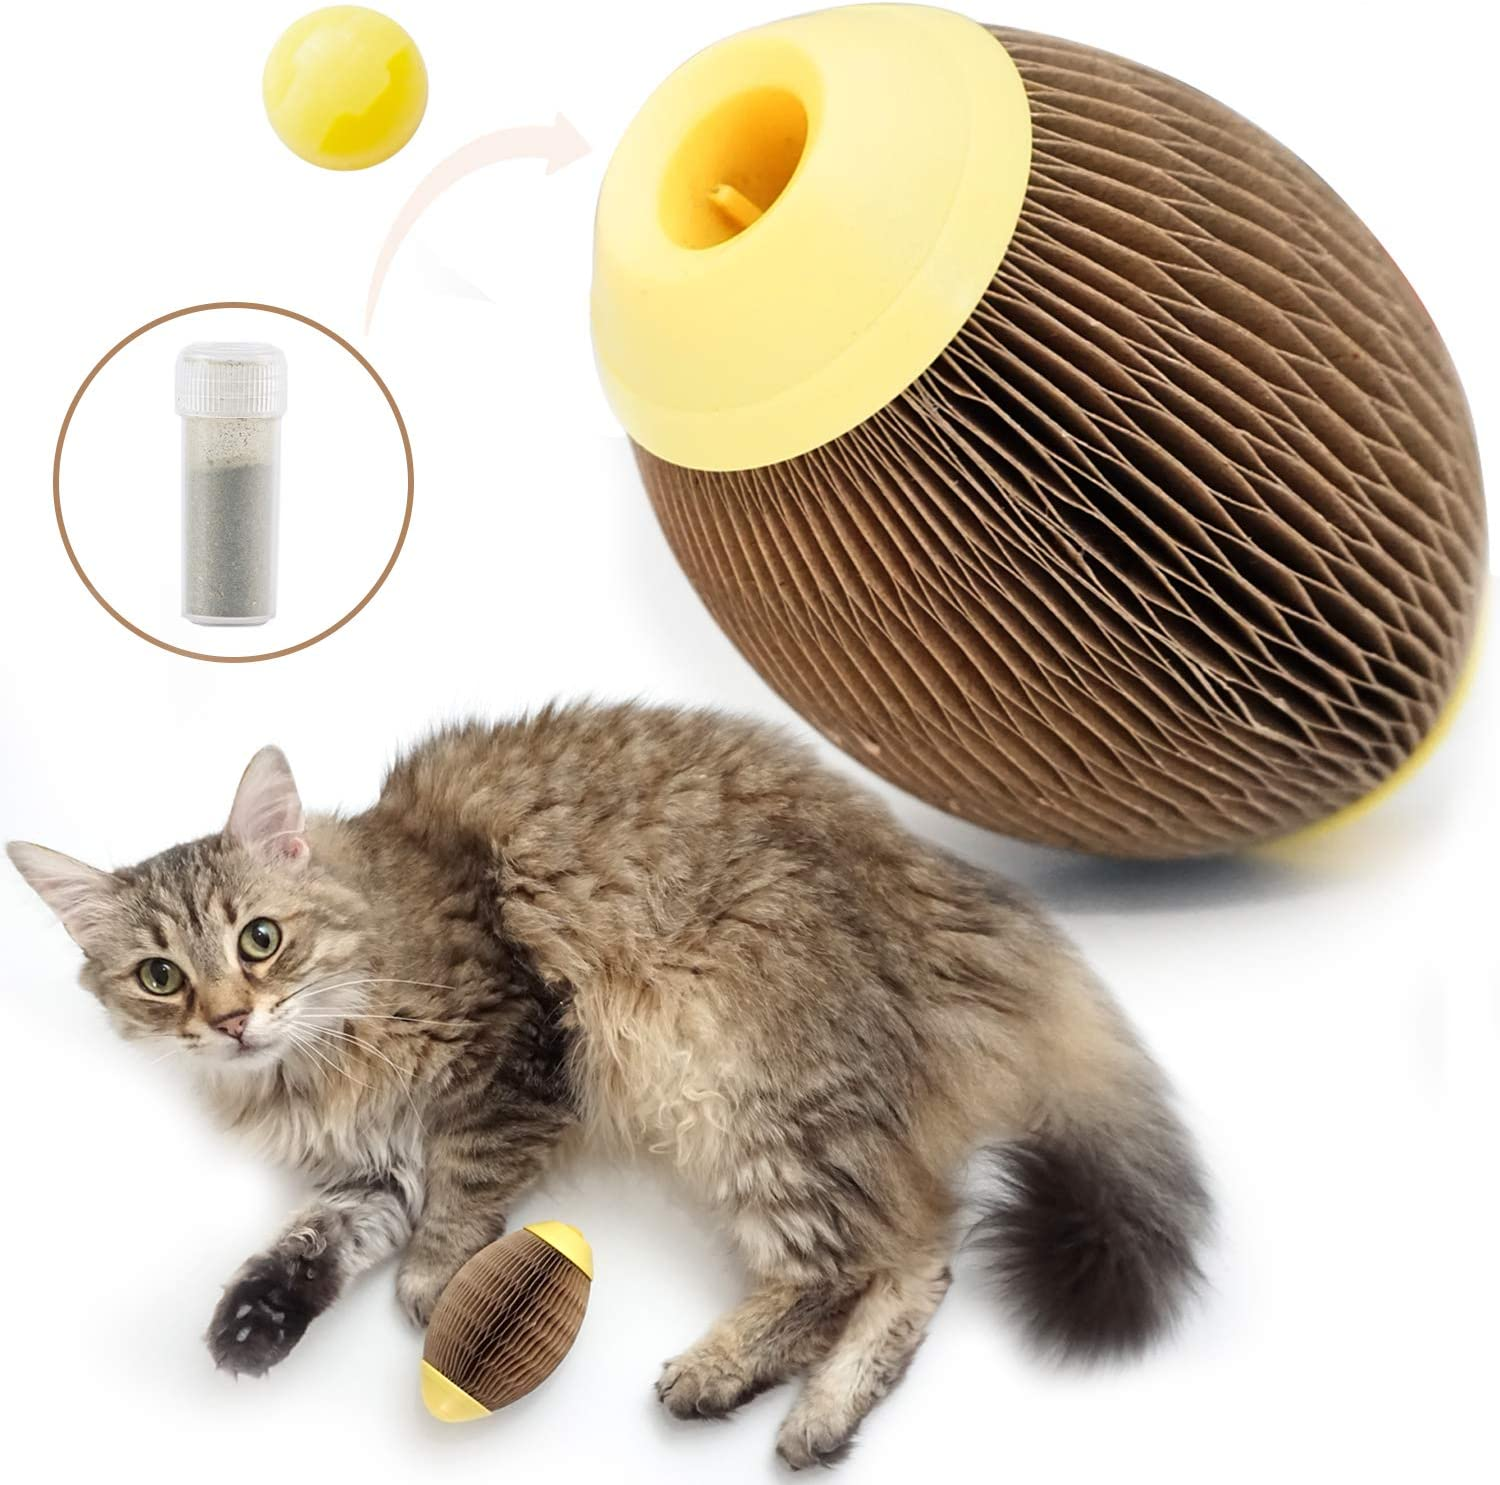 ARELLA Catnip Football Toy for Cats Catnip Refillable Scratcher Ball Kitty's Faithful Playmate Reduce Obesity and Loneliness CSB06BR